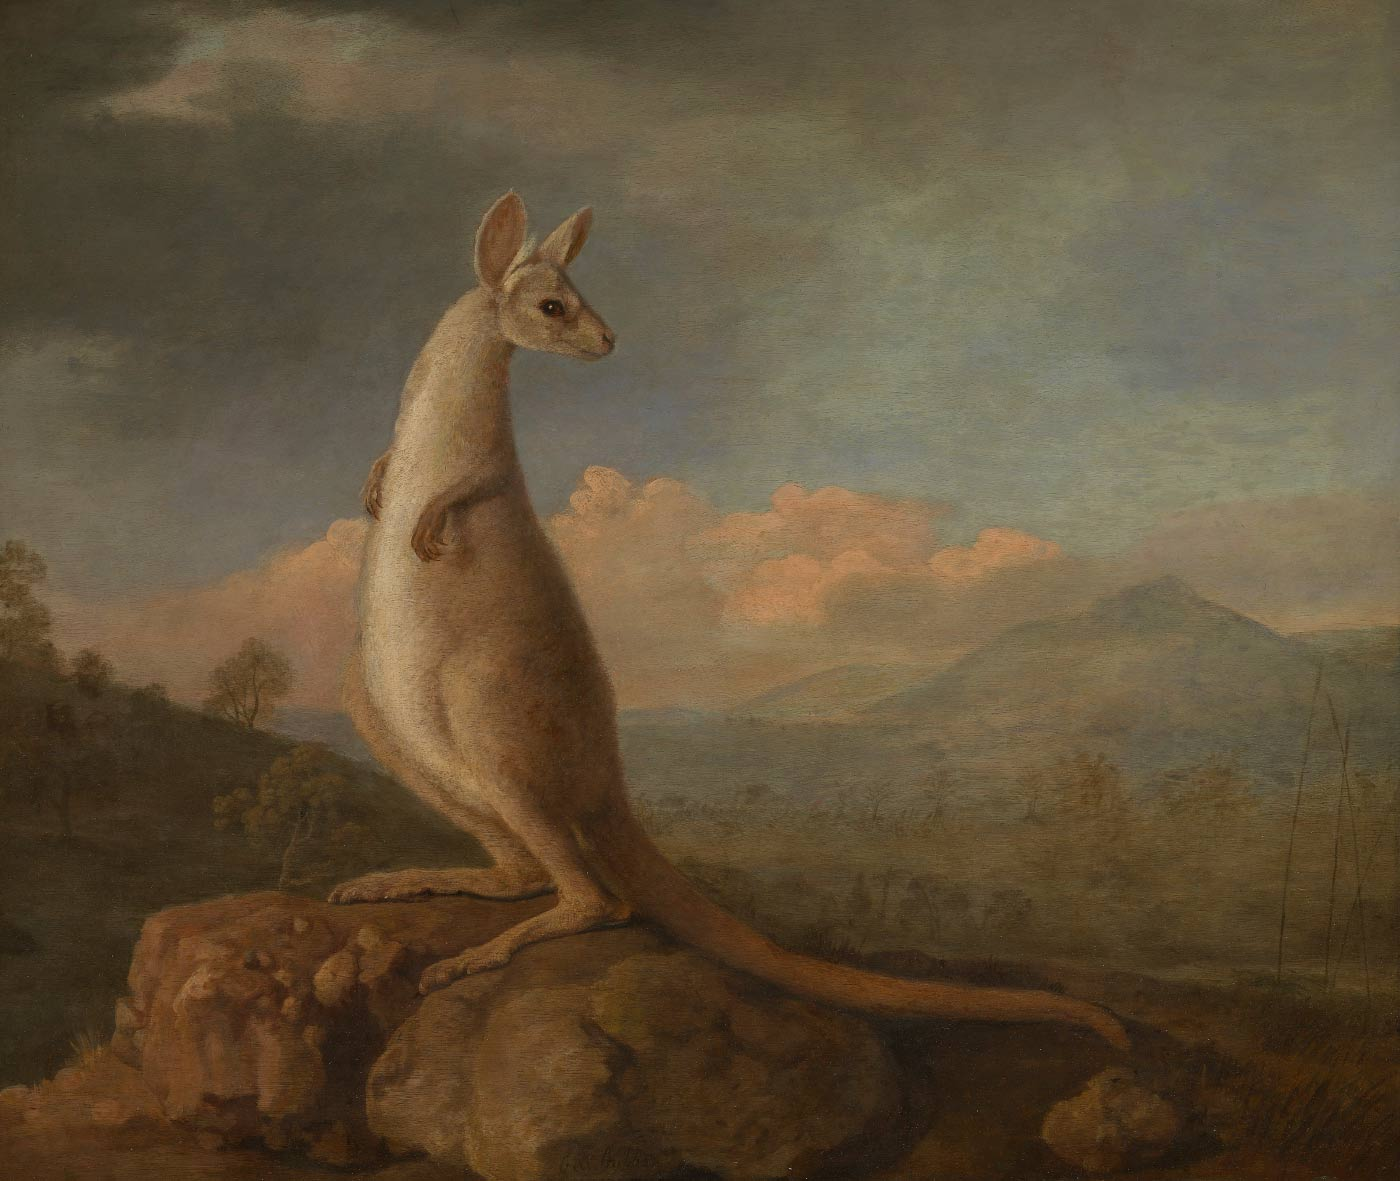 Painting of a kangaroo standing on a rock with a rural landscape in the background. - click to view larger image